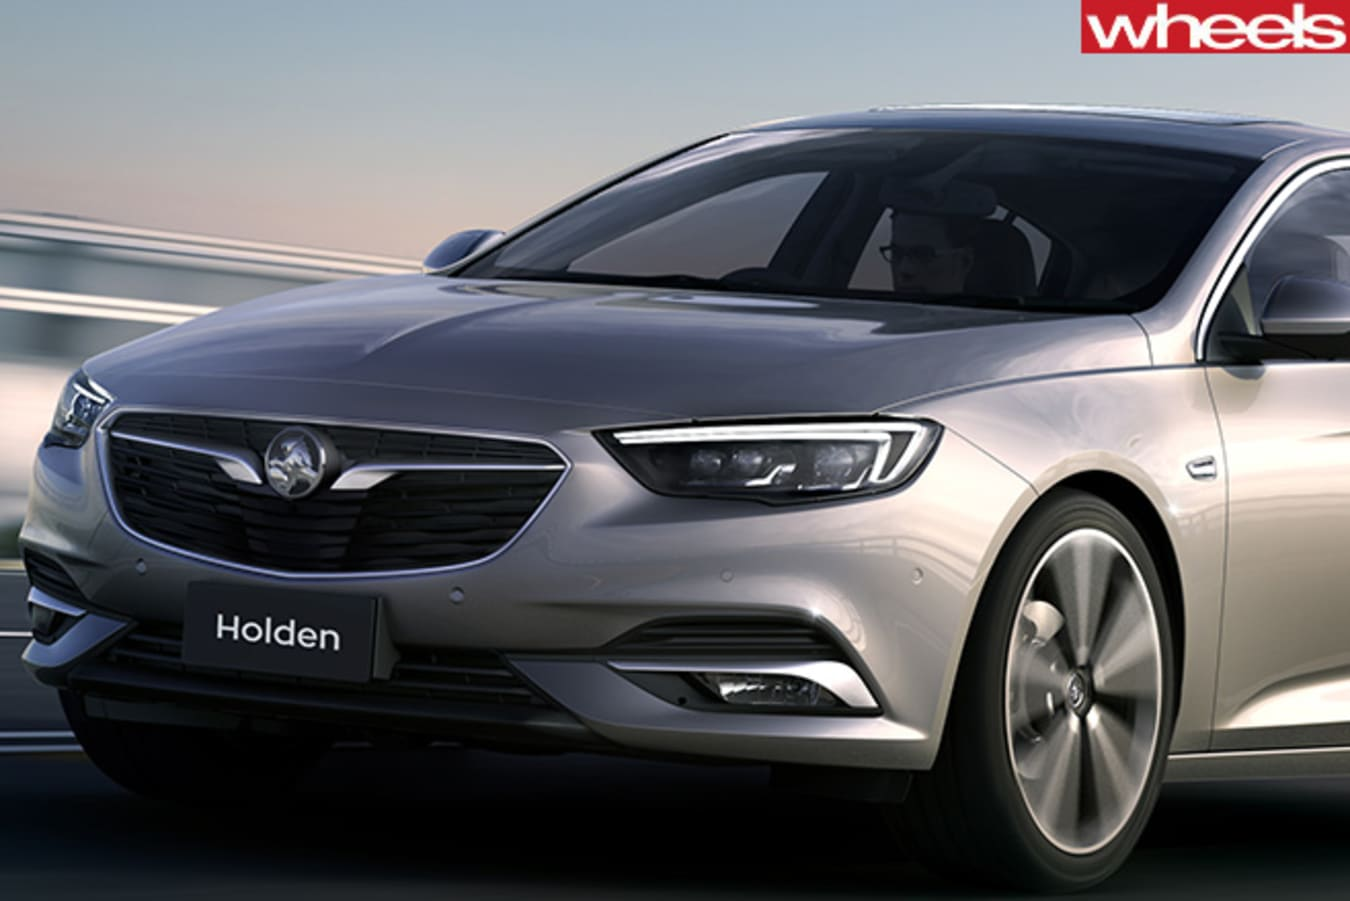 2017-Holden -Commodore -front -close